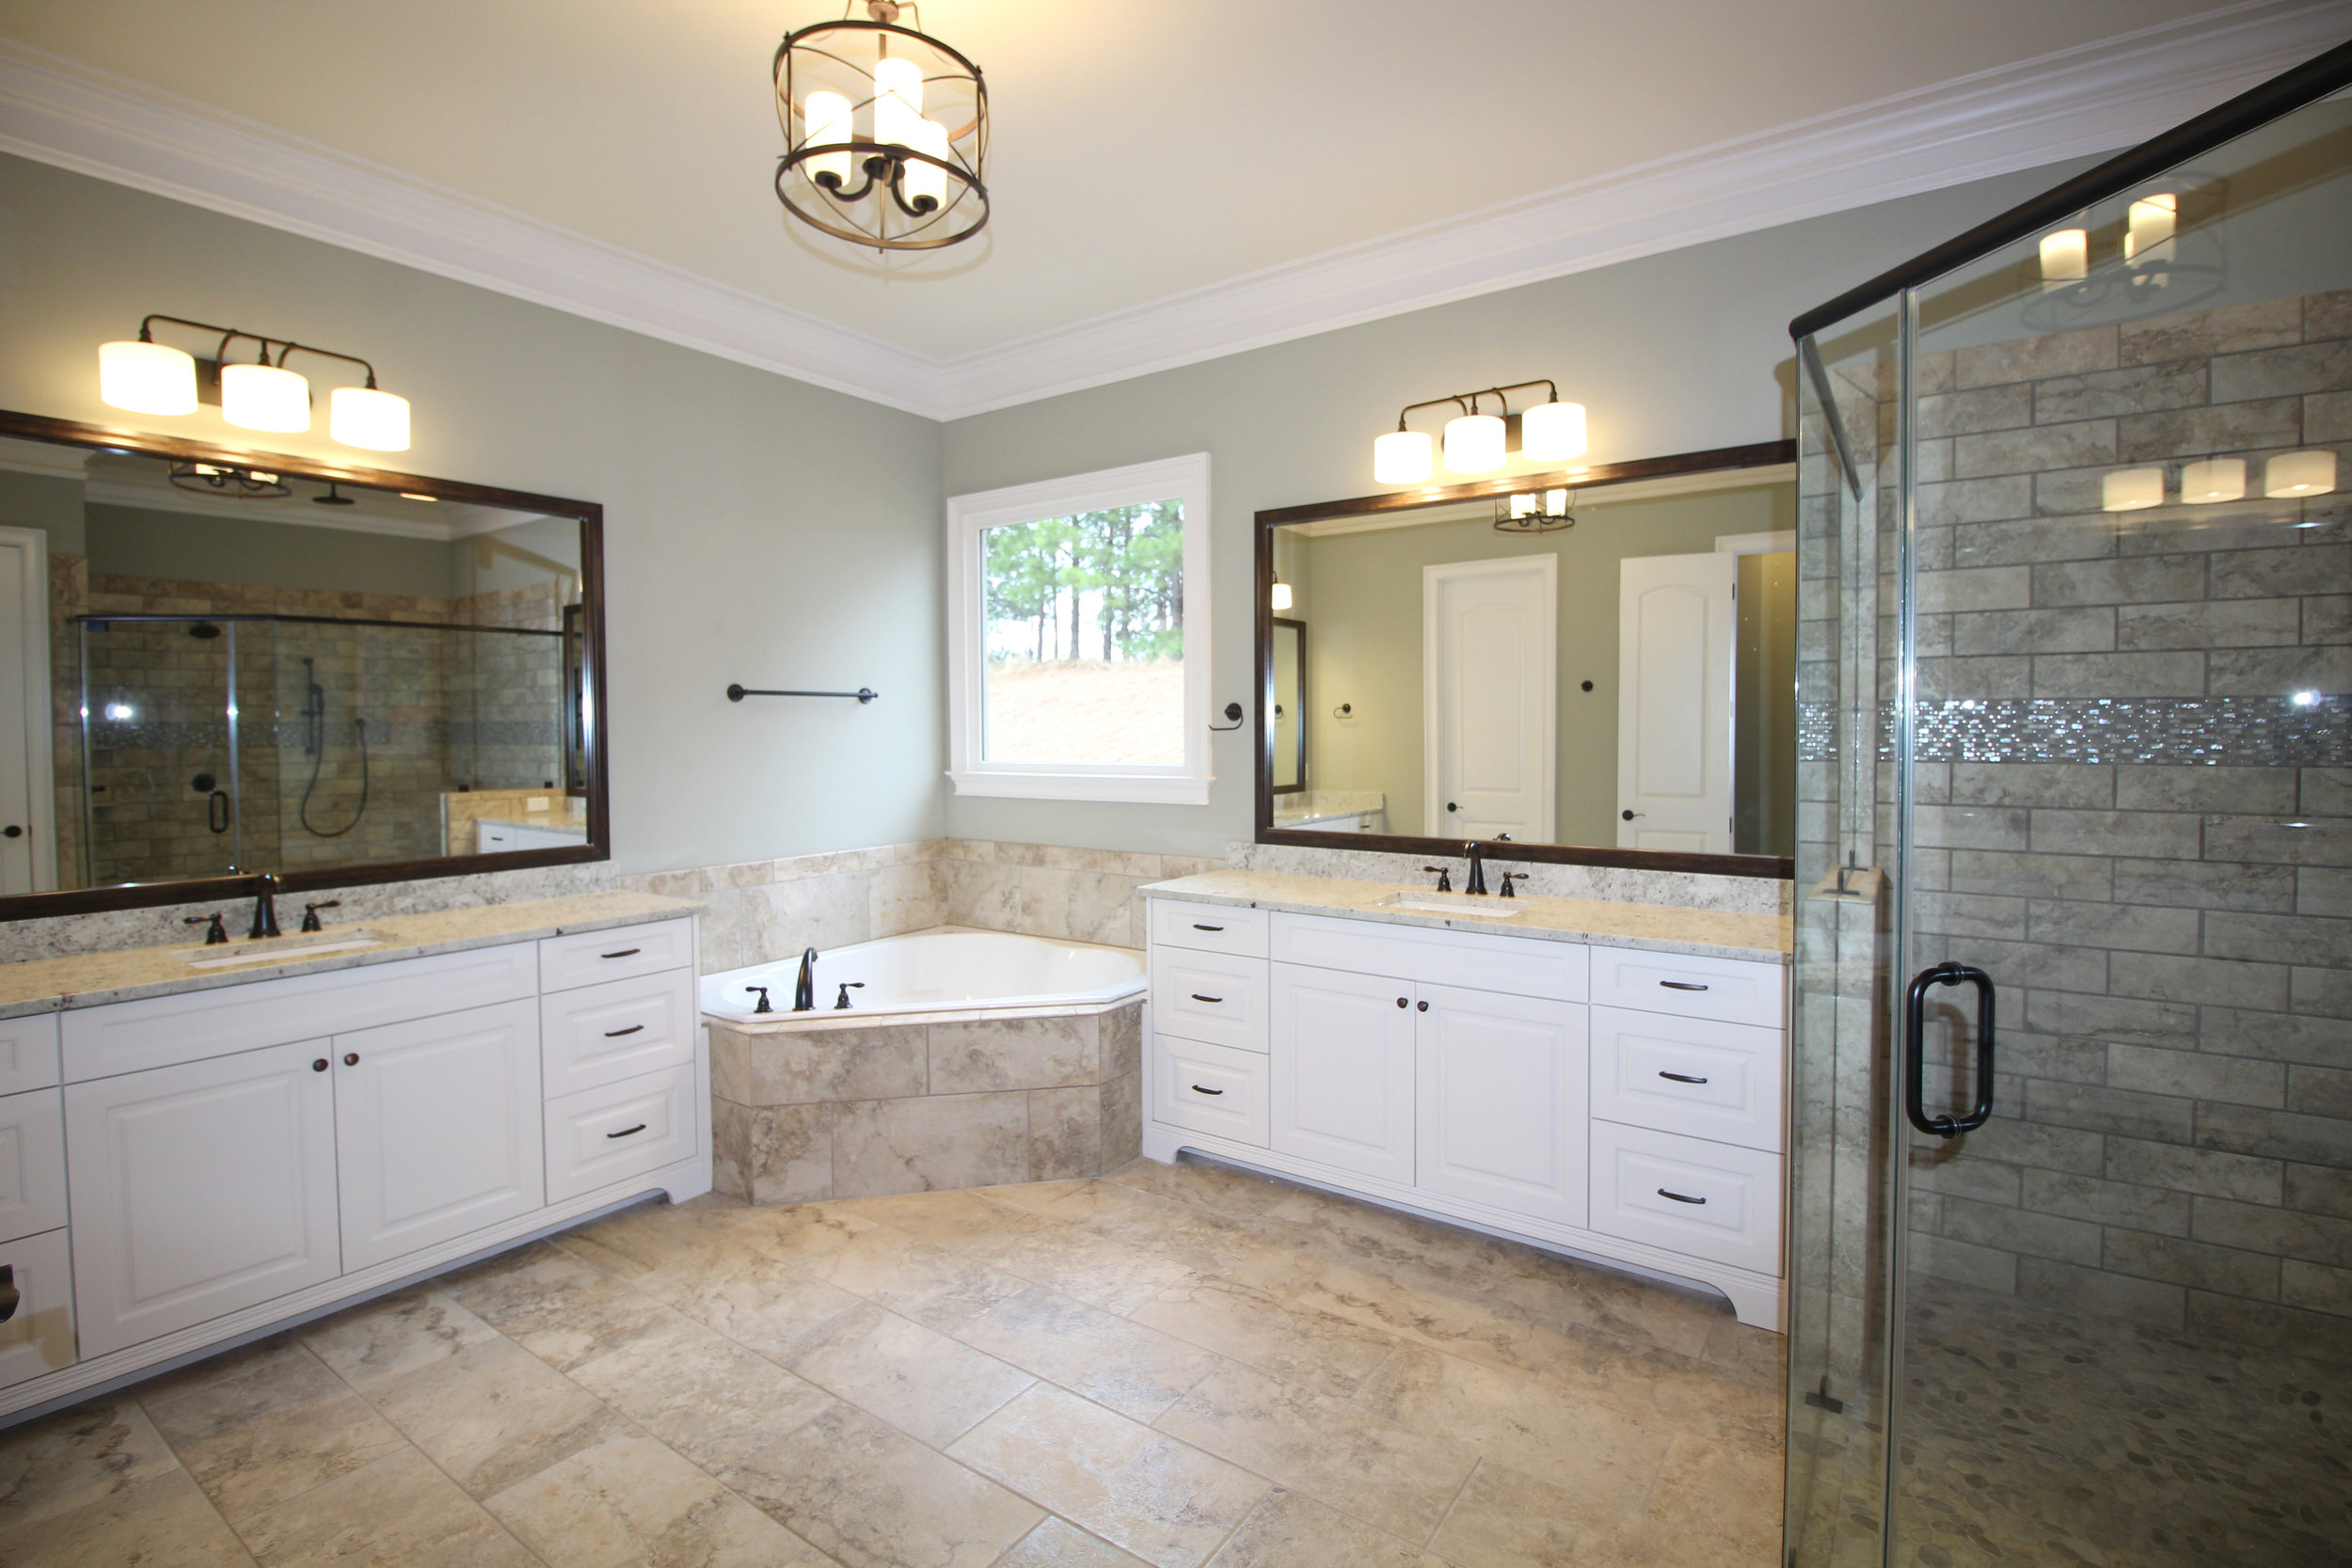 large-tile-marble-counter-tops-1756-greenleffe-drive-statham-ga-30666-the-georgia-club-oconee-county-oconee-springs-athens-area-home-for-sale-courtyard-homes.JPG